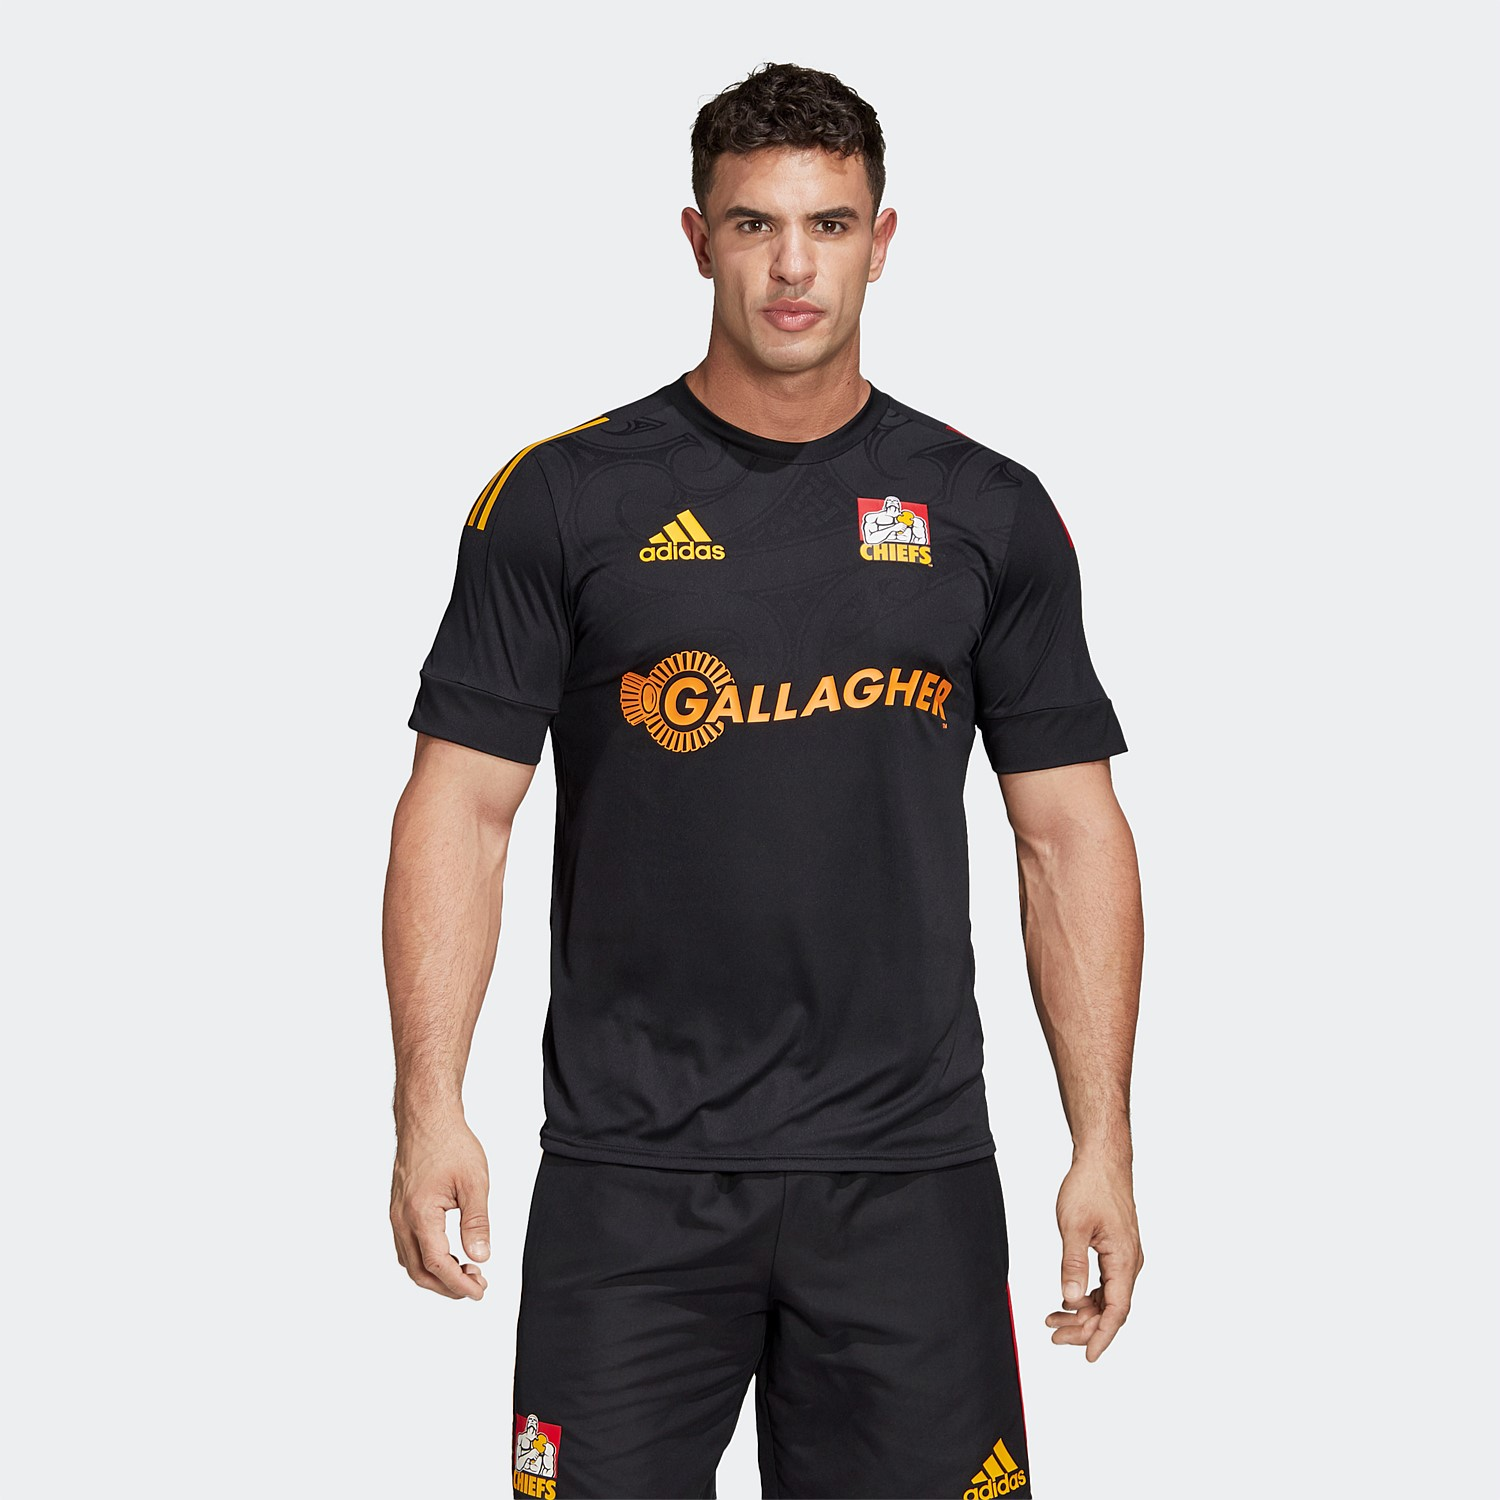 Sarabo árabe mezcla capacidad  adidas | Shop adidas Performance Clothing, Footwear and Accessories Online  | Stirling Sports - Chiefs Performance Tee